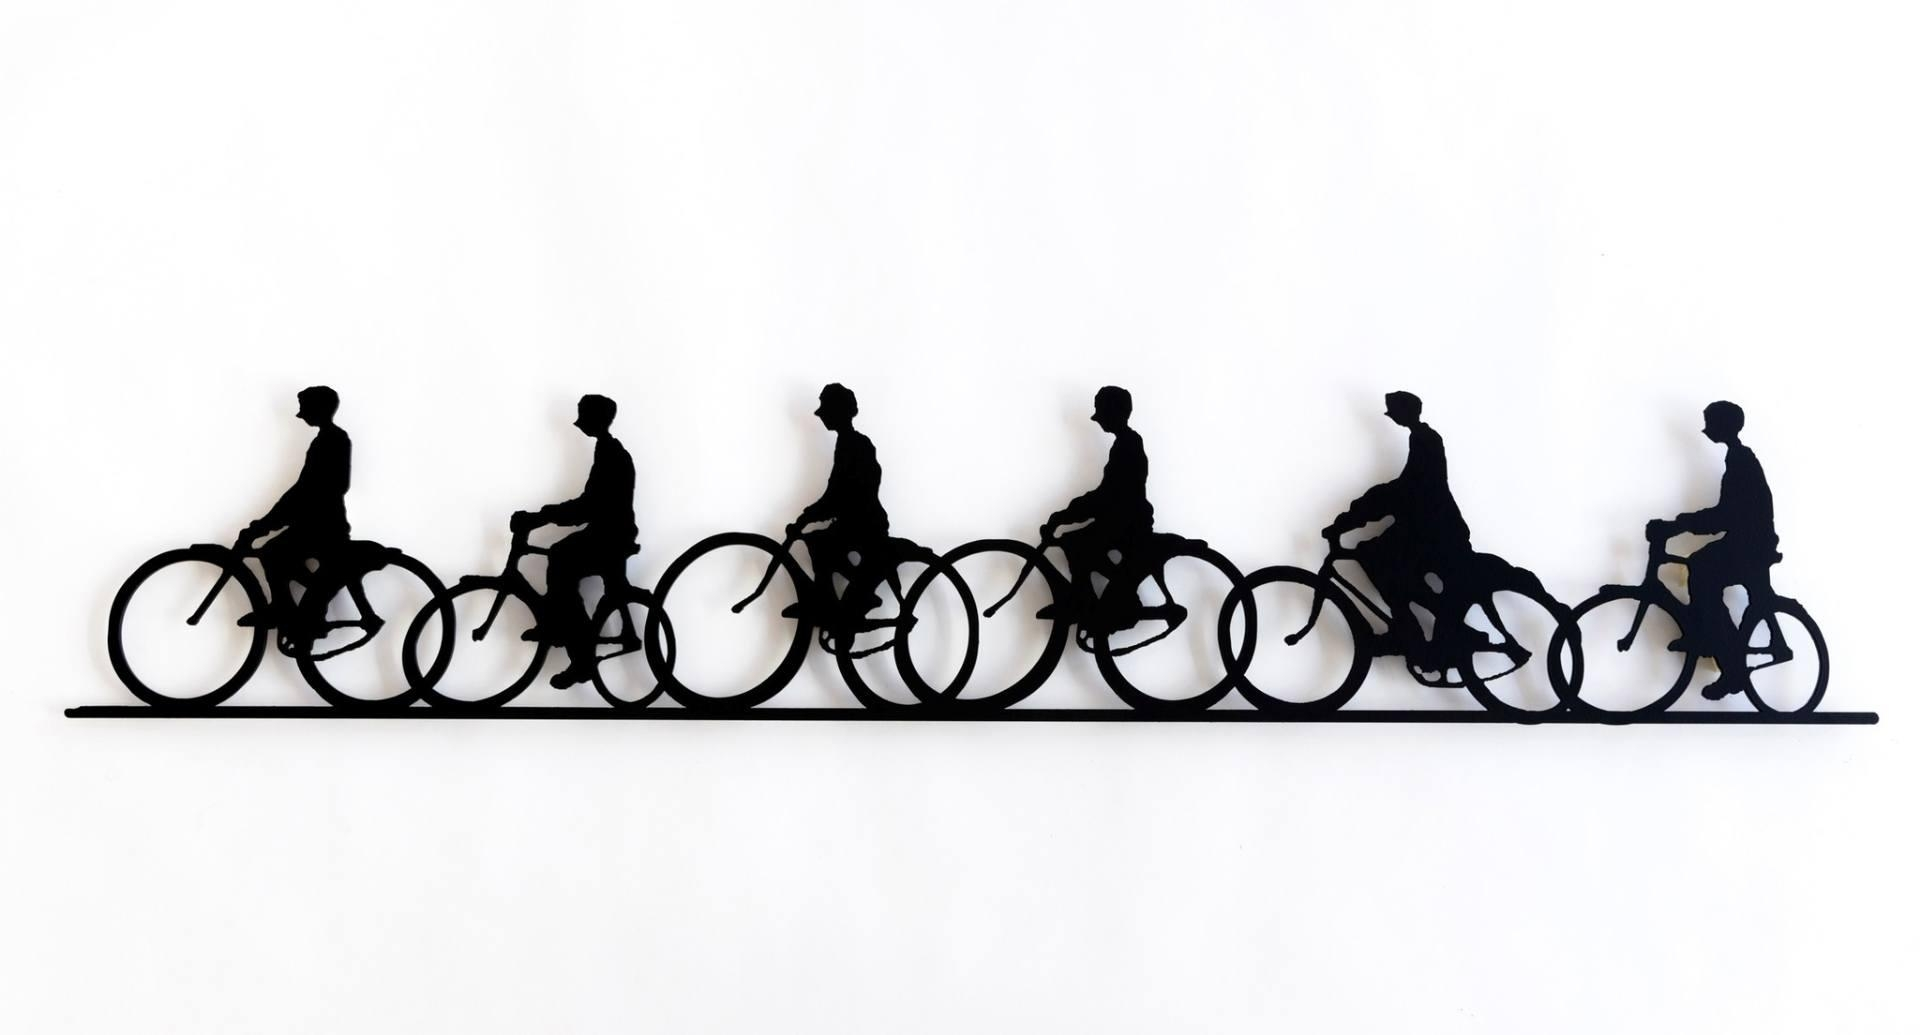 Saatchi Art: Six Bicycle Riders Sculptureuri Dushy Regarding Metal Bicycle Art (Image 17 of 20)